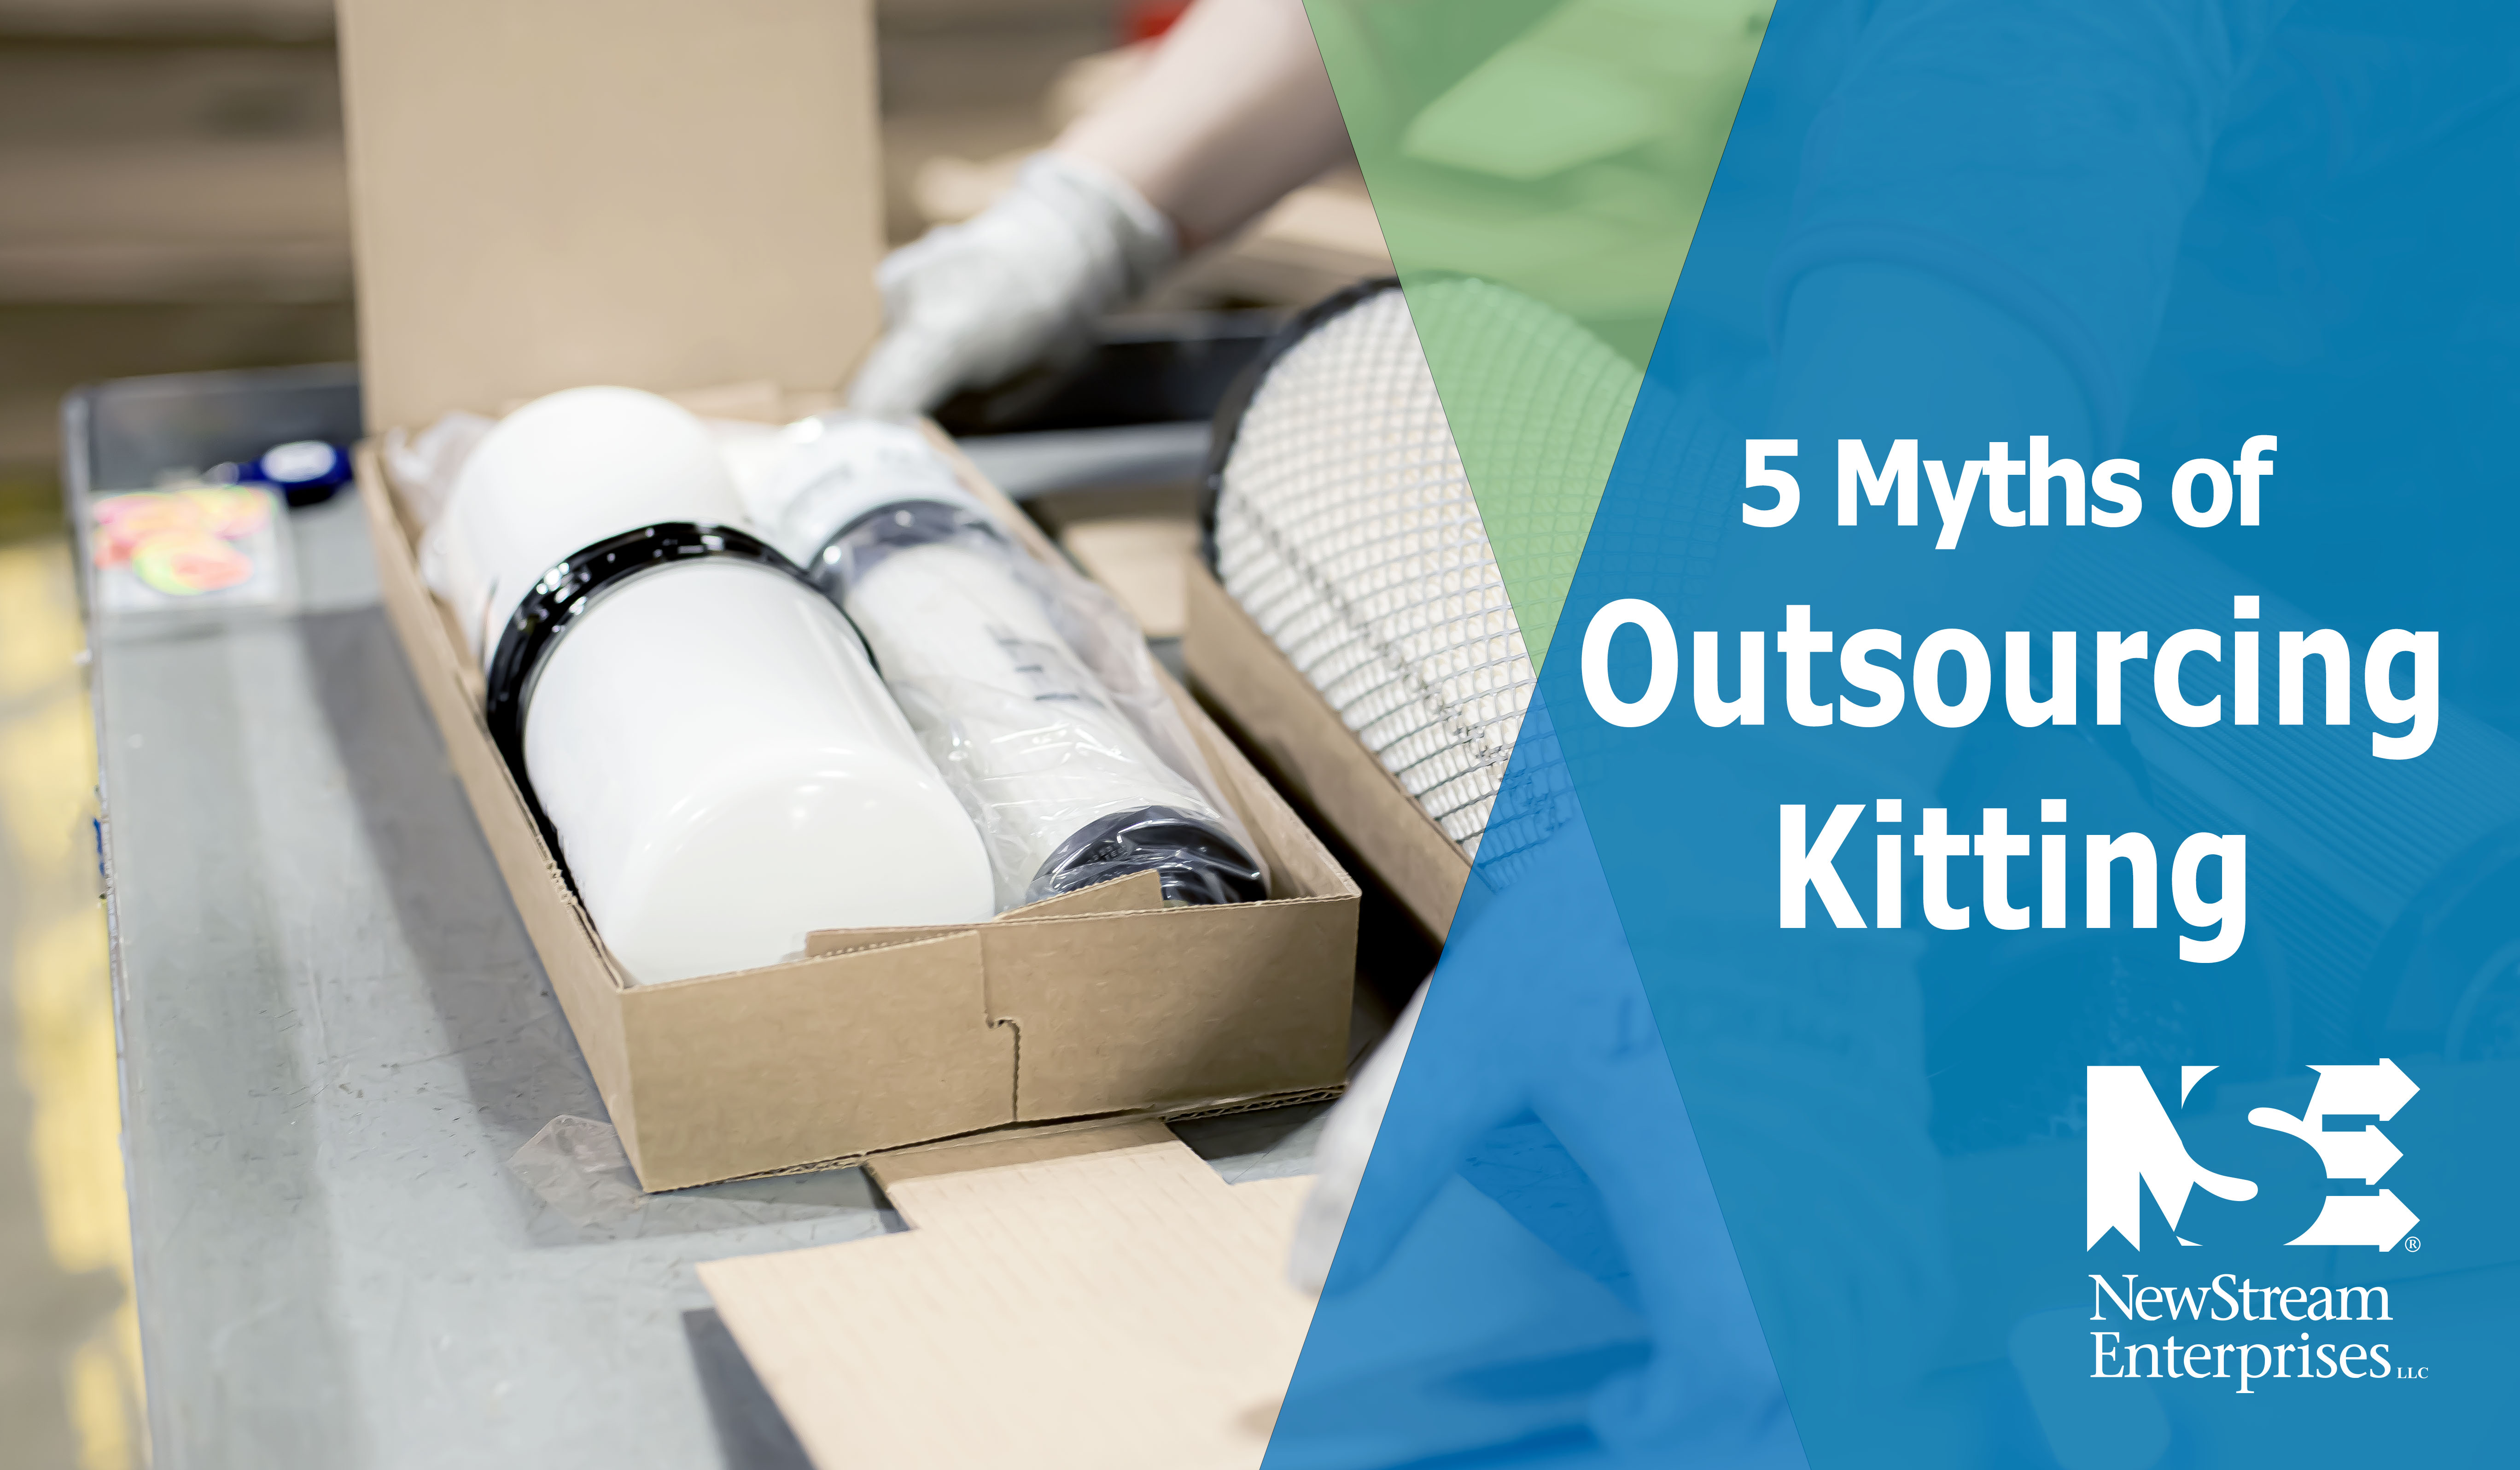 NSE-Blog-Image-5Myths-of-Outsourcing-Kitting